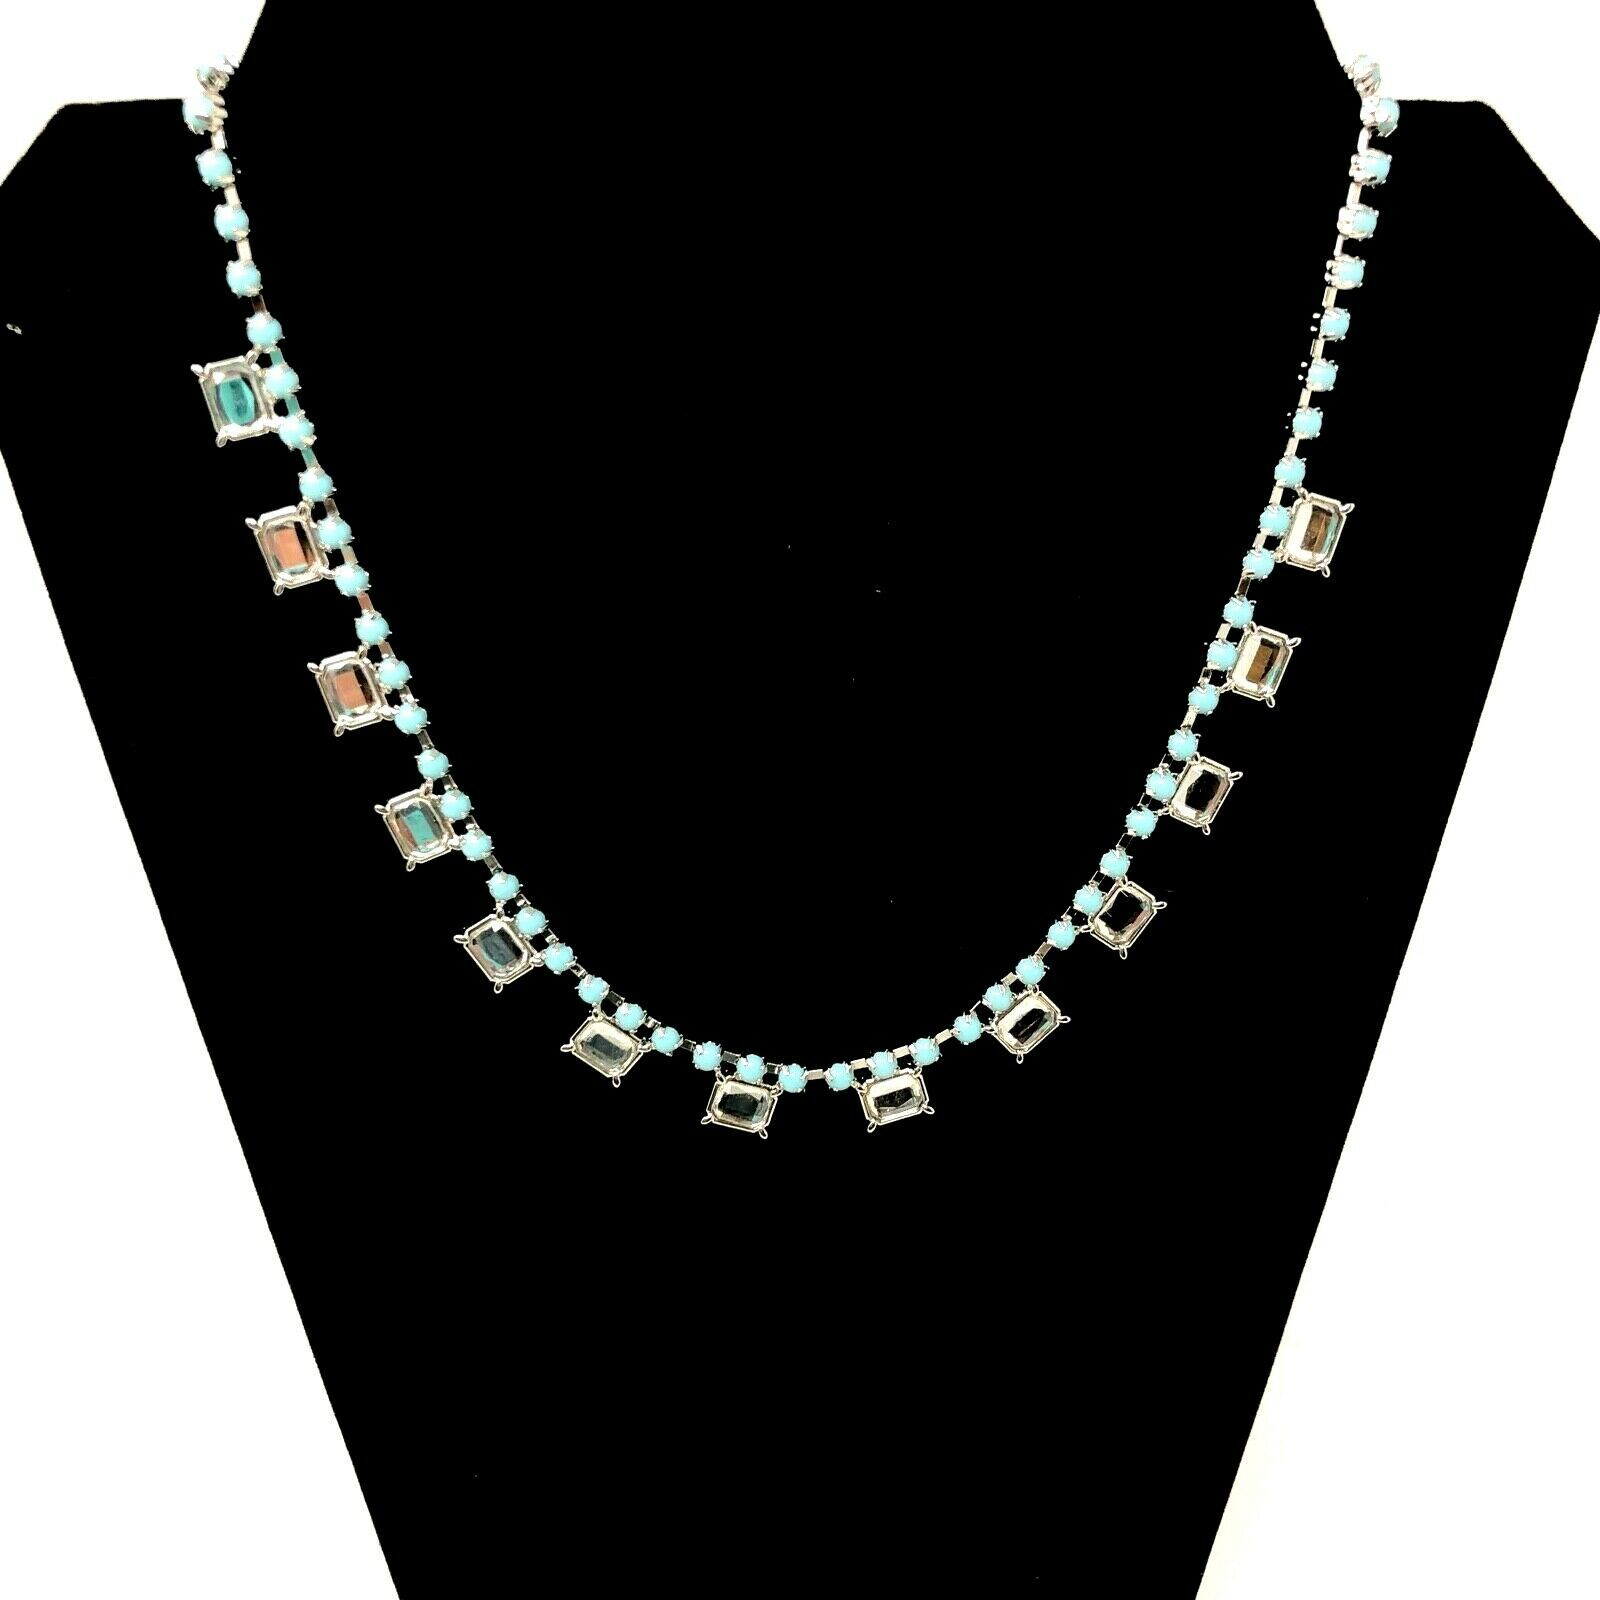 Lia Sophia Necklace Pendant Silver Tone Teal Blue Beads Clear Crystals Damsel - $15.04